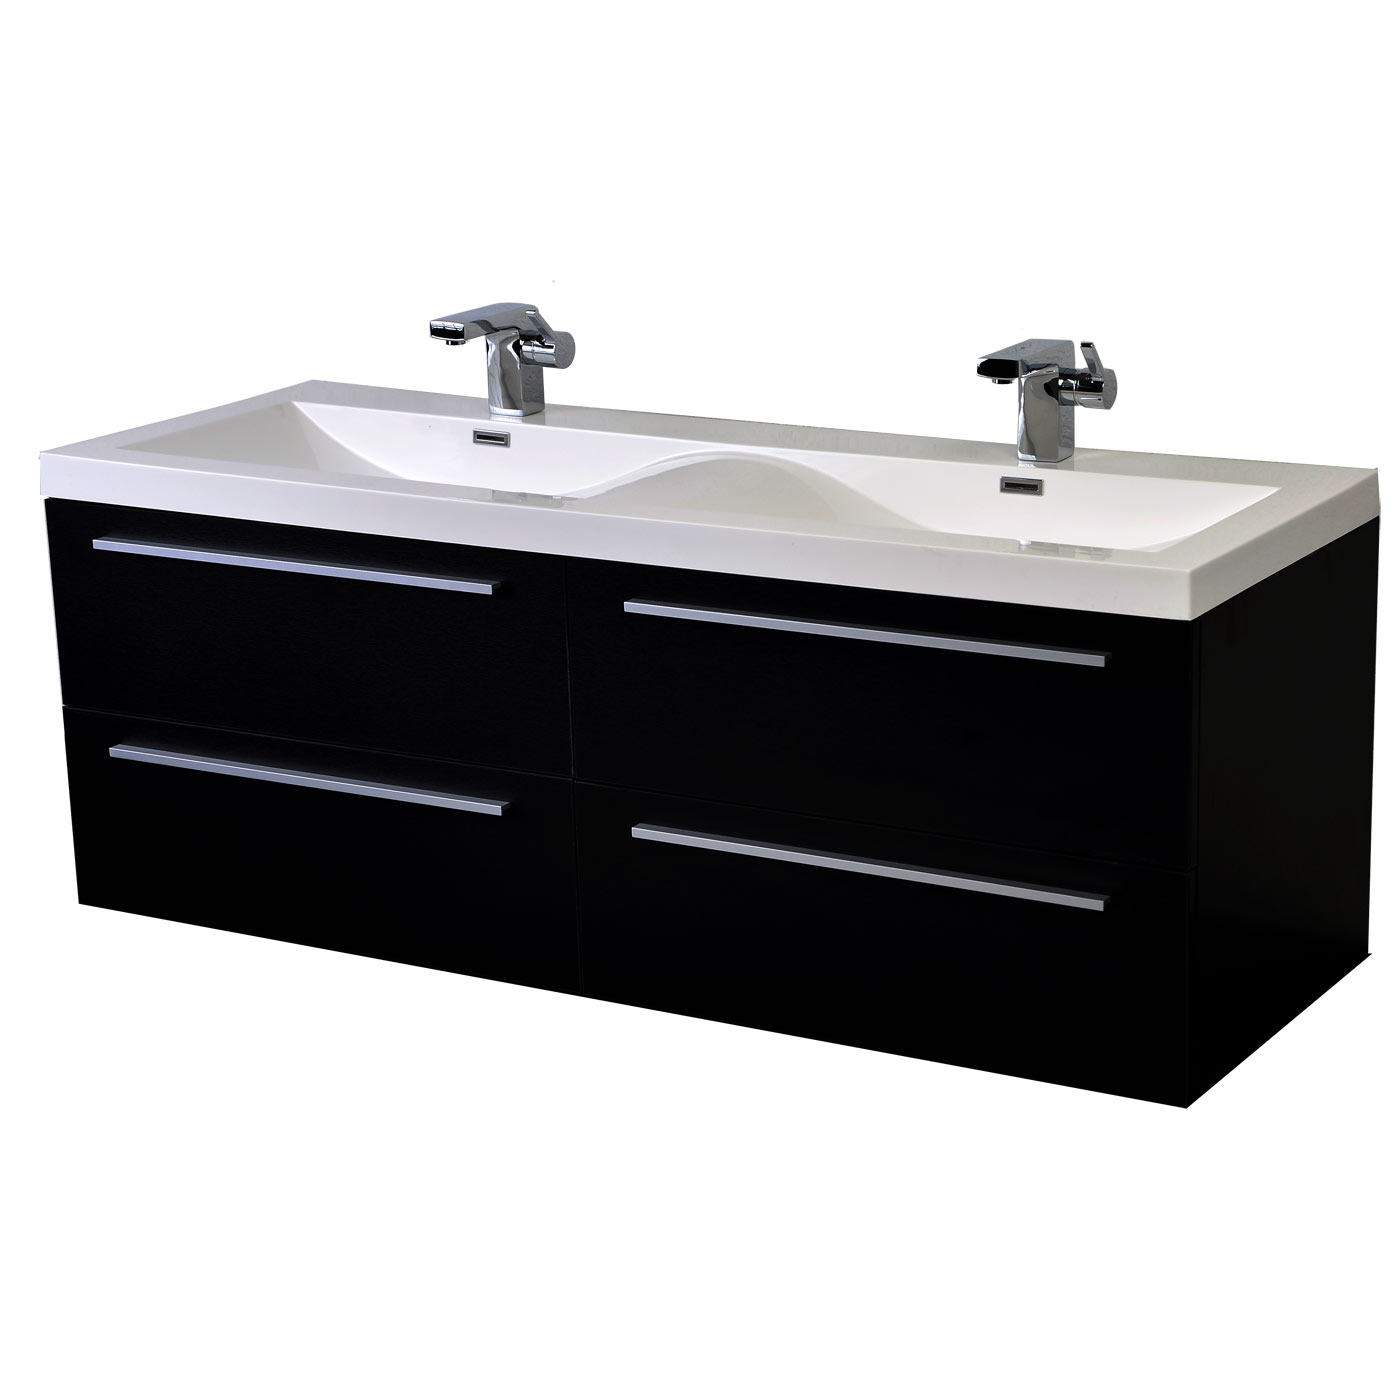 two sinks in bathroom 57 inch modern sink vanity set with wavy sinks 21071